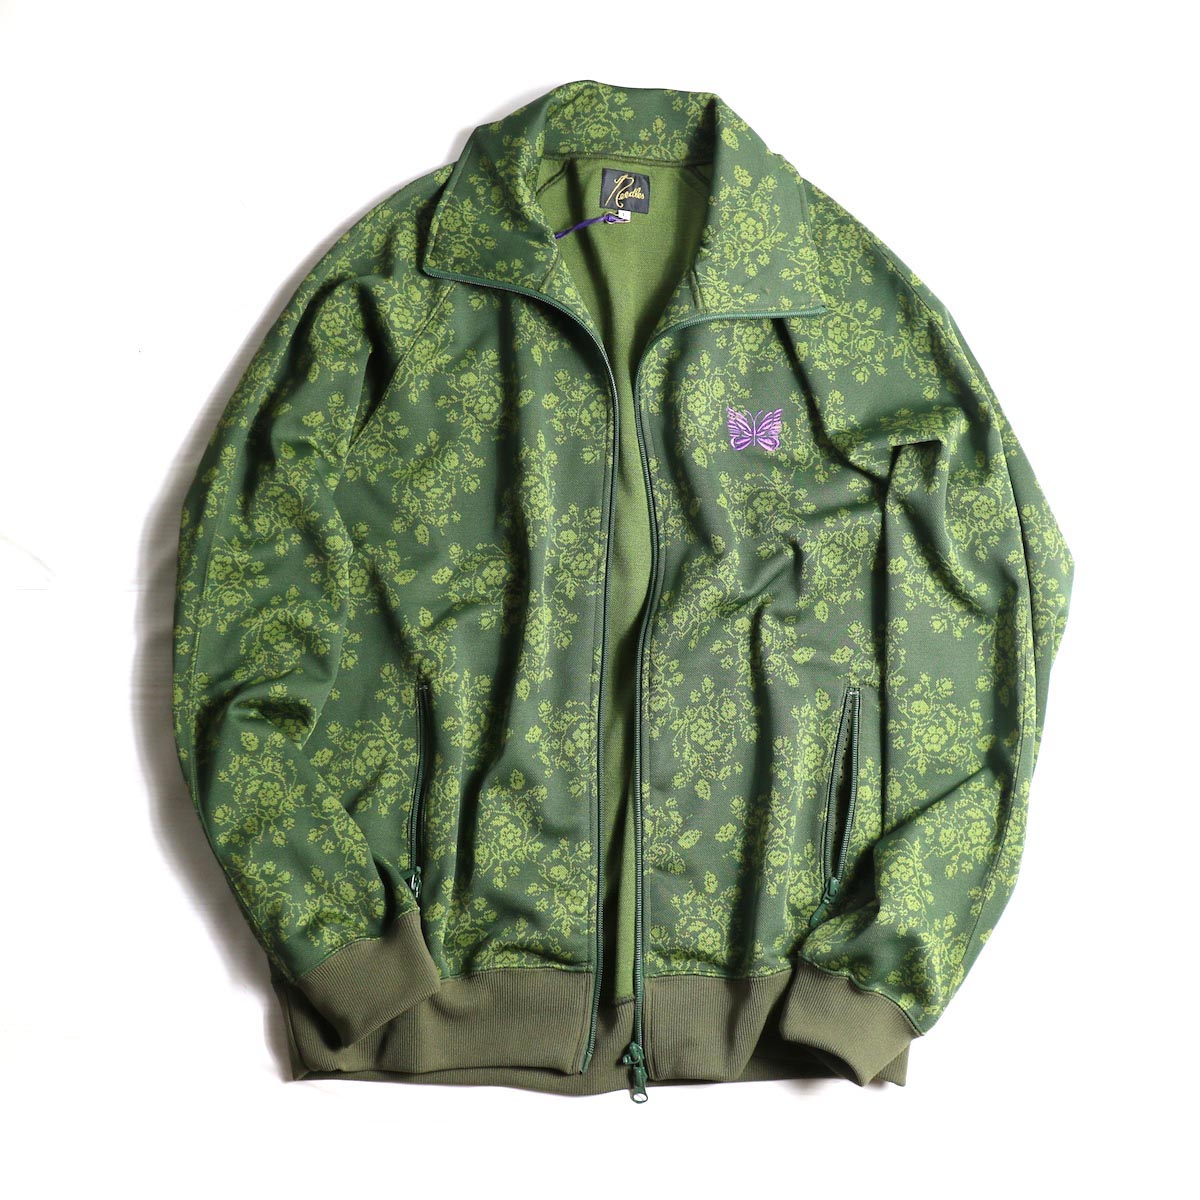 NEEDLES / TRACK JACKET - POLY JACQUARD / FLOWER (RED)NEEDLES / TRACK JACKET - POLY JACQUARD / FLOWER (GREEN)